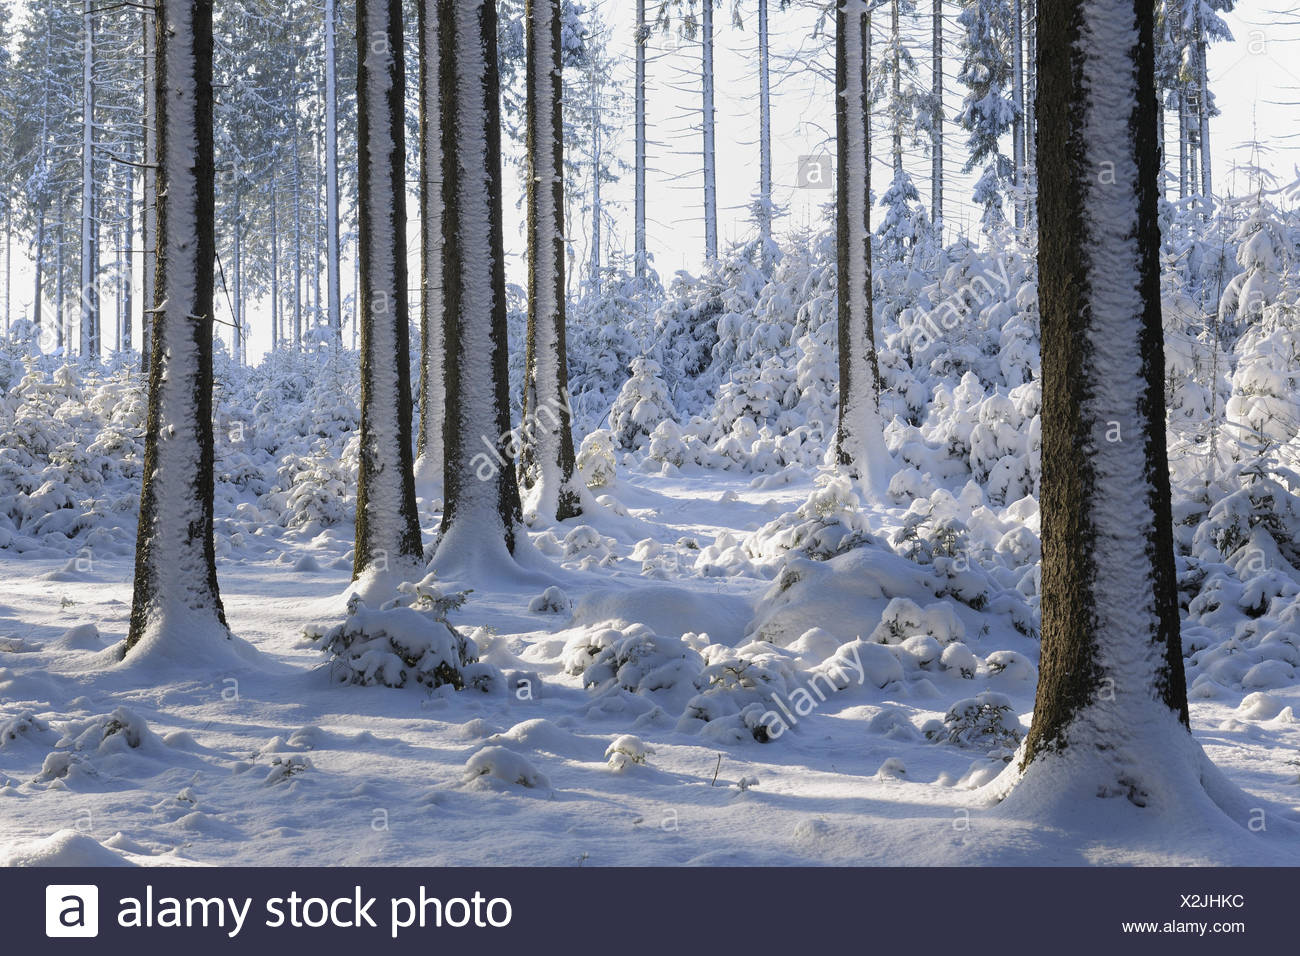 Winter forest, conifers, detail, trunks, - Stock Image